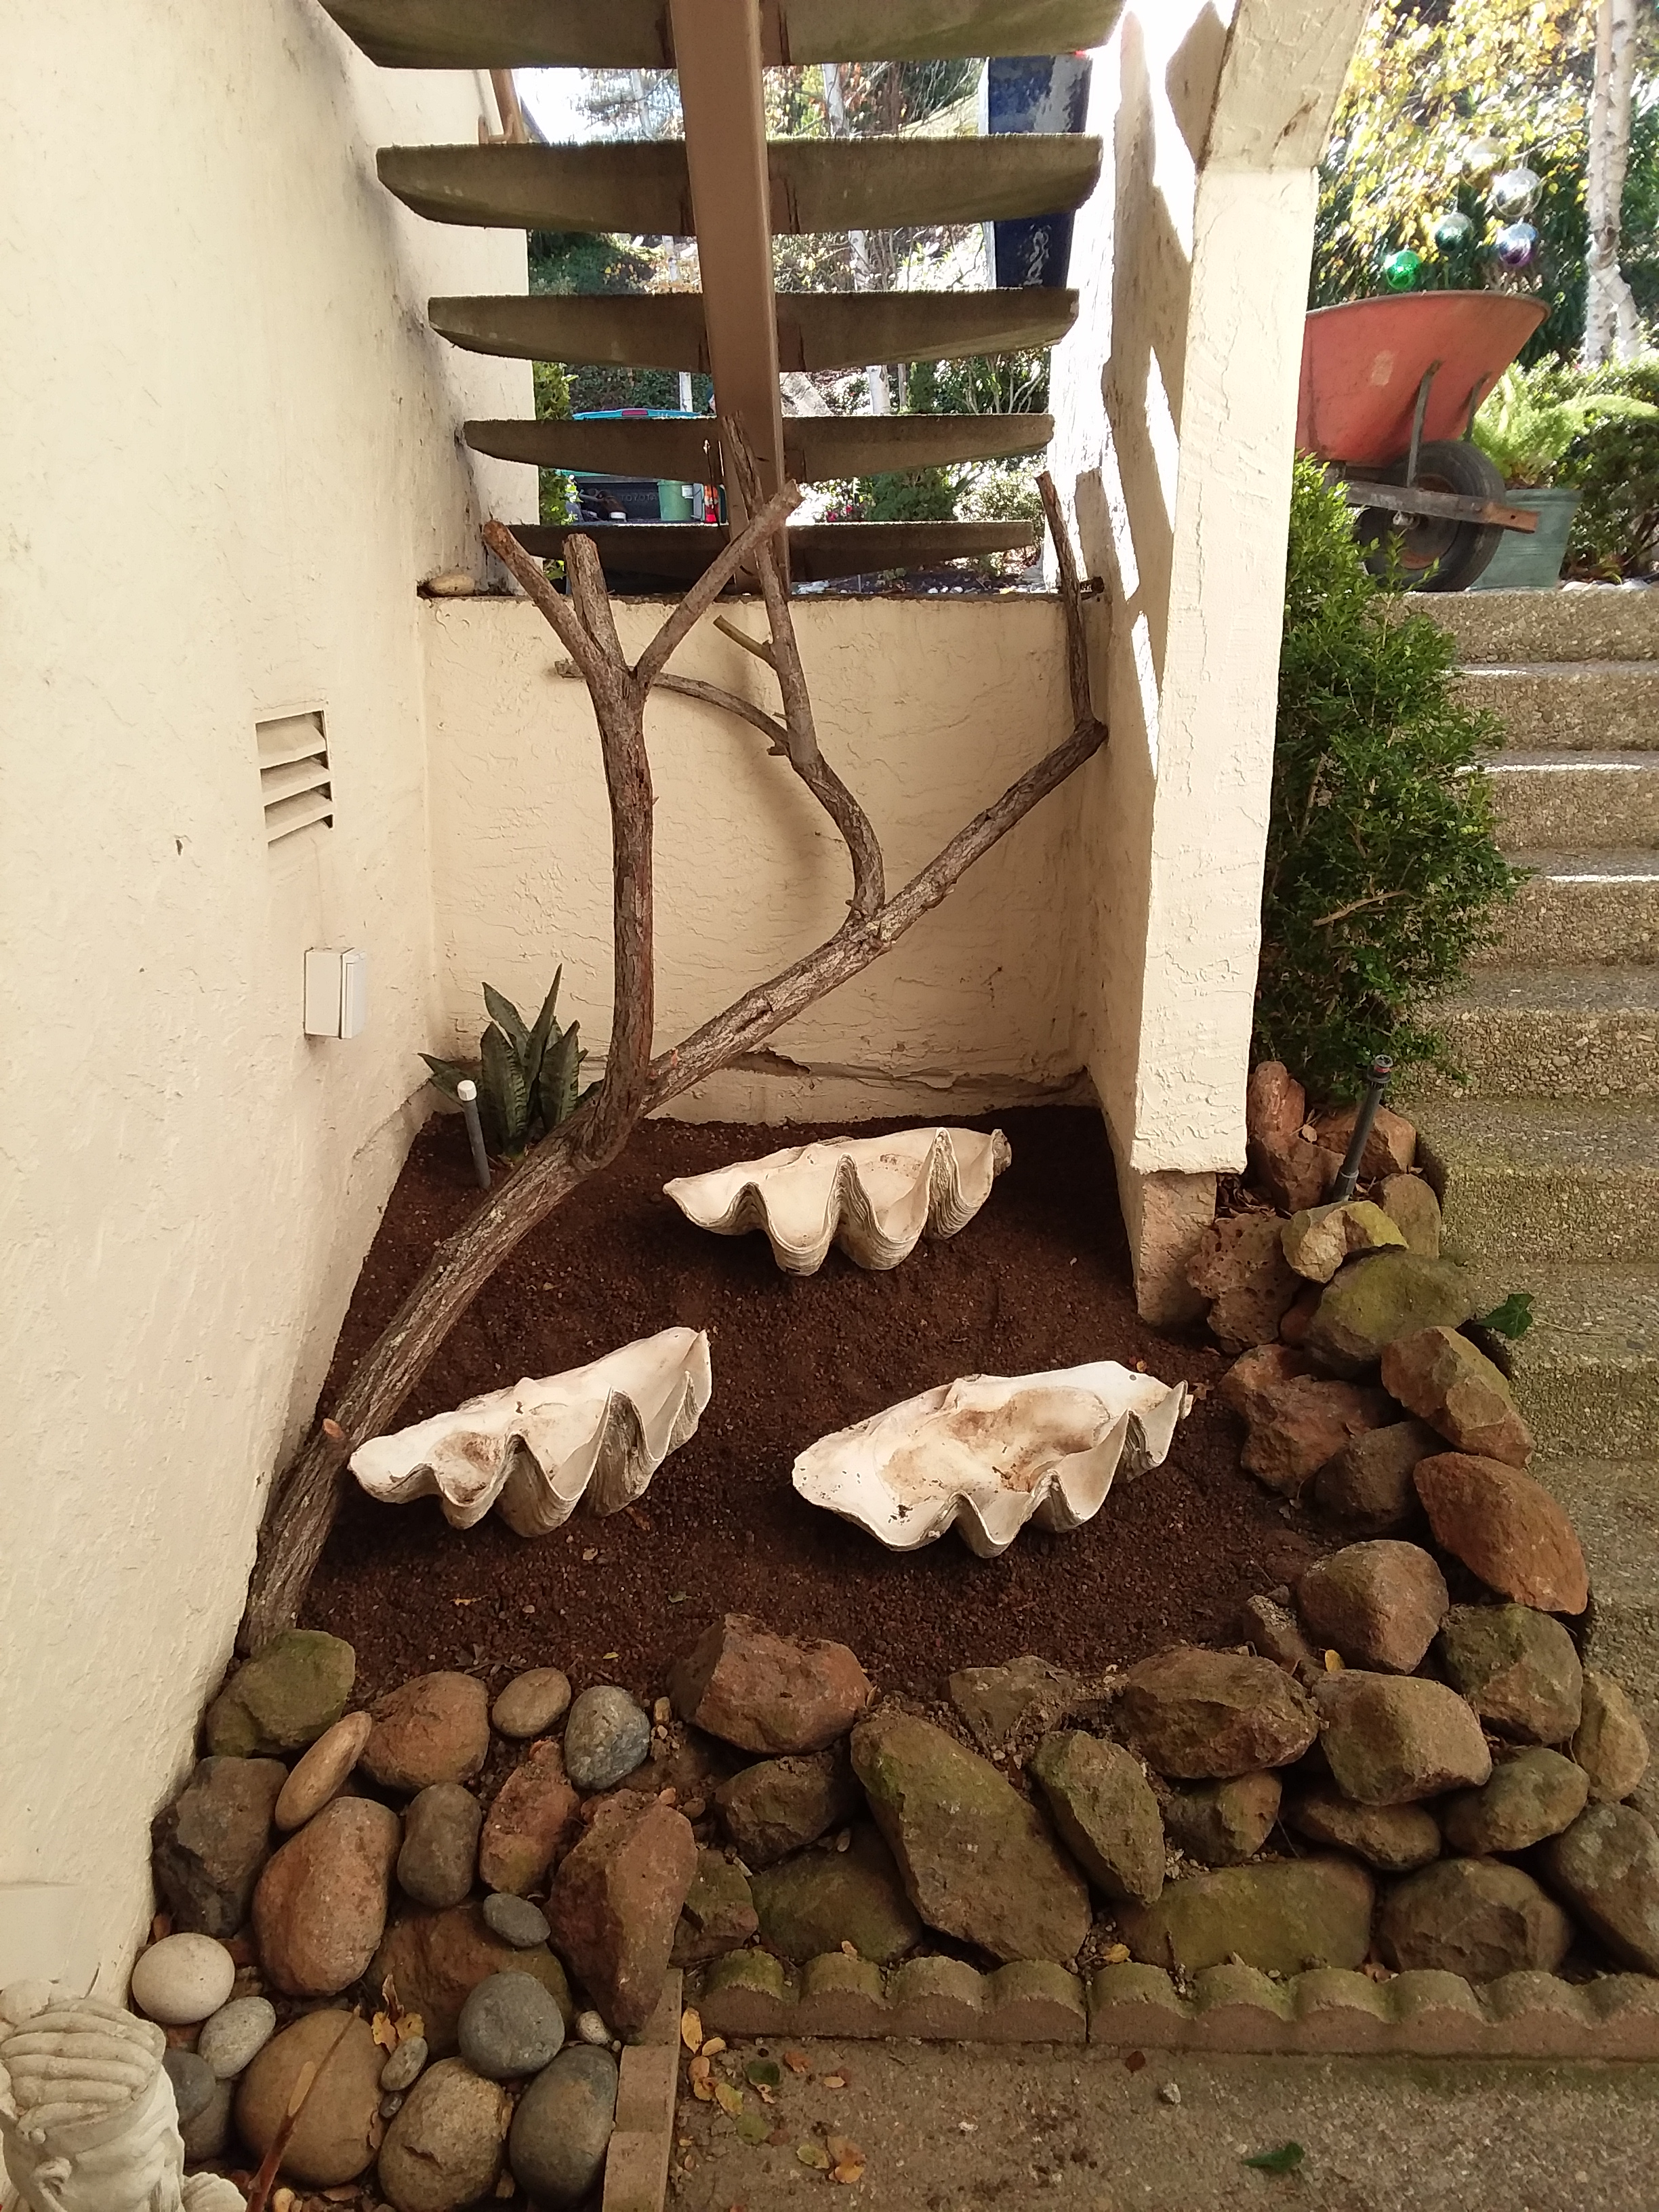 Giant Clam Shells Under Stairwell with 1st Plant Installed & Decorative Branch 12-29-18.jpg